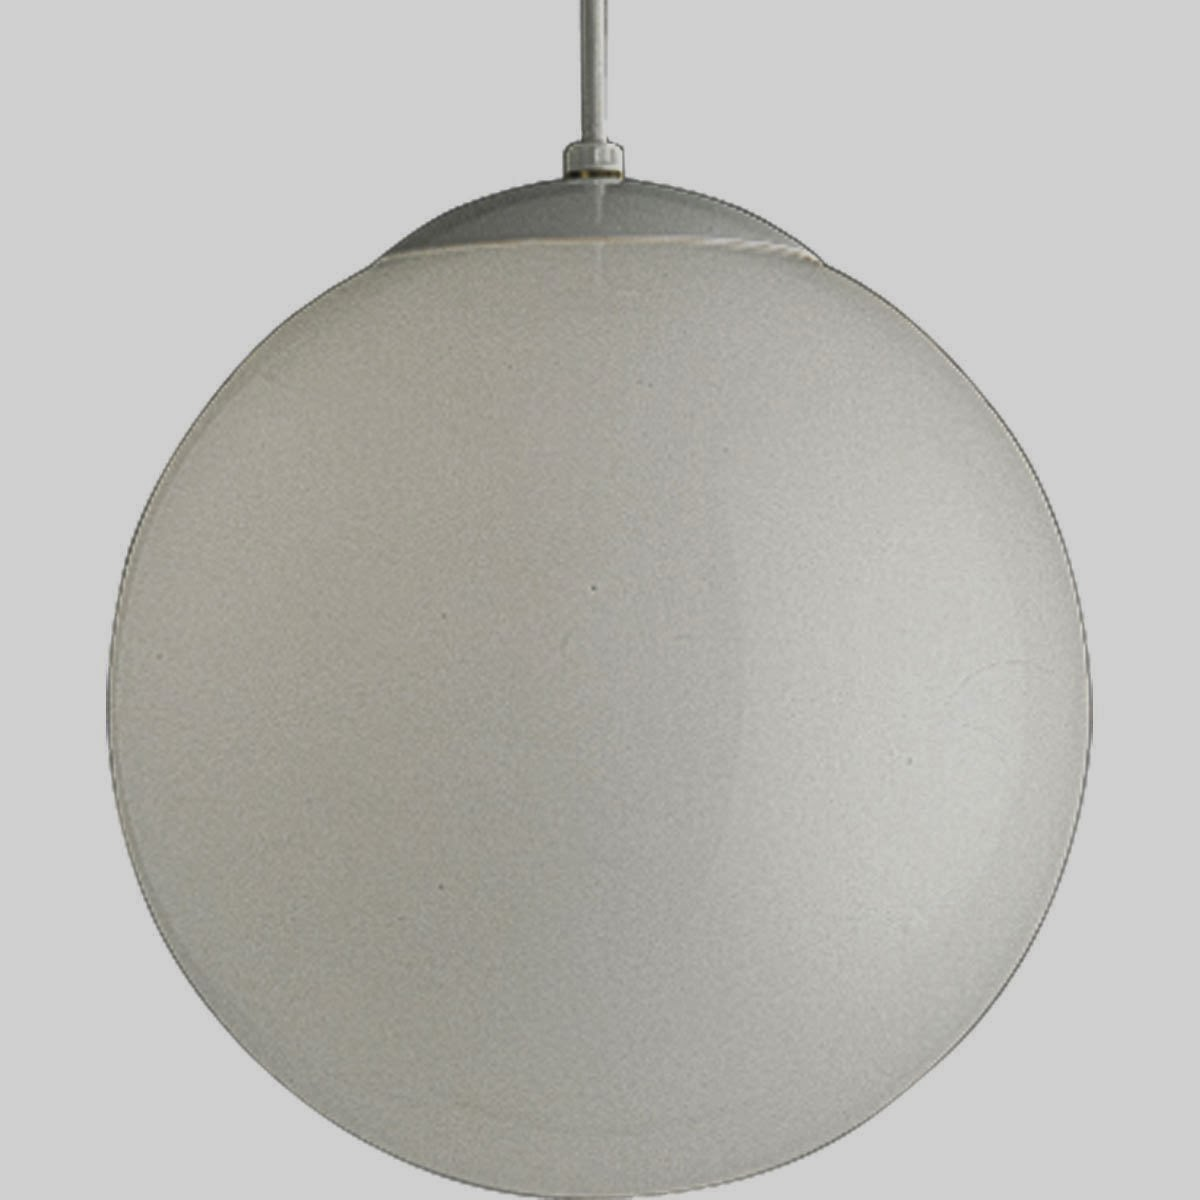 Eichler globe lighting globe lights fogmodern west elm for Mid century modern globe pendant light